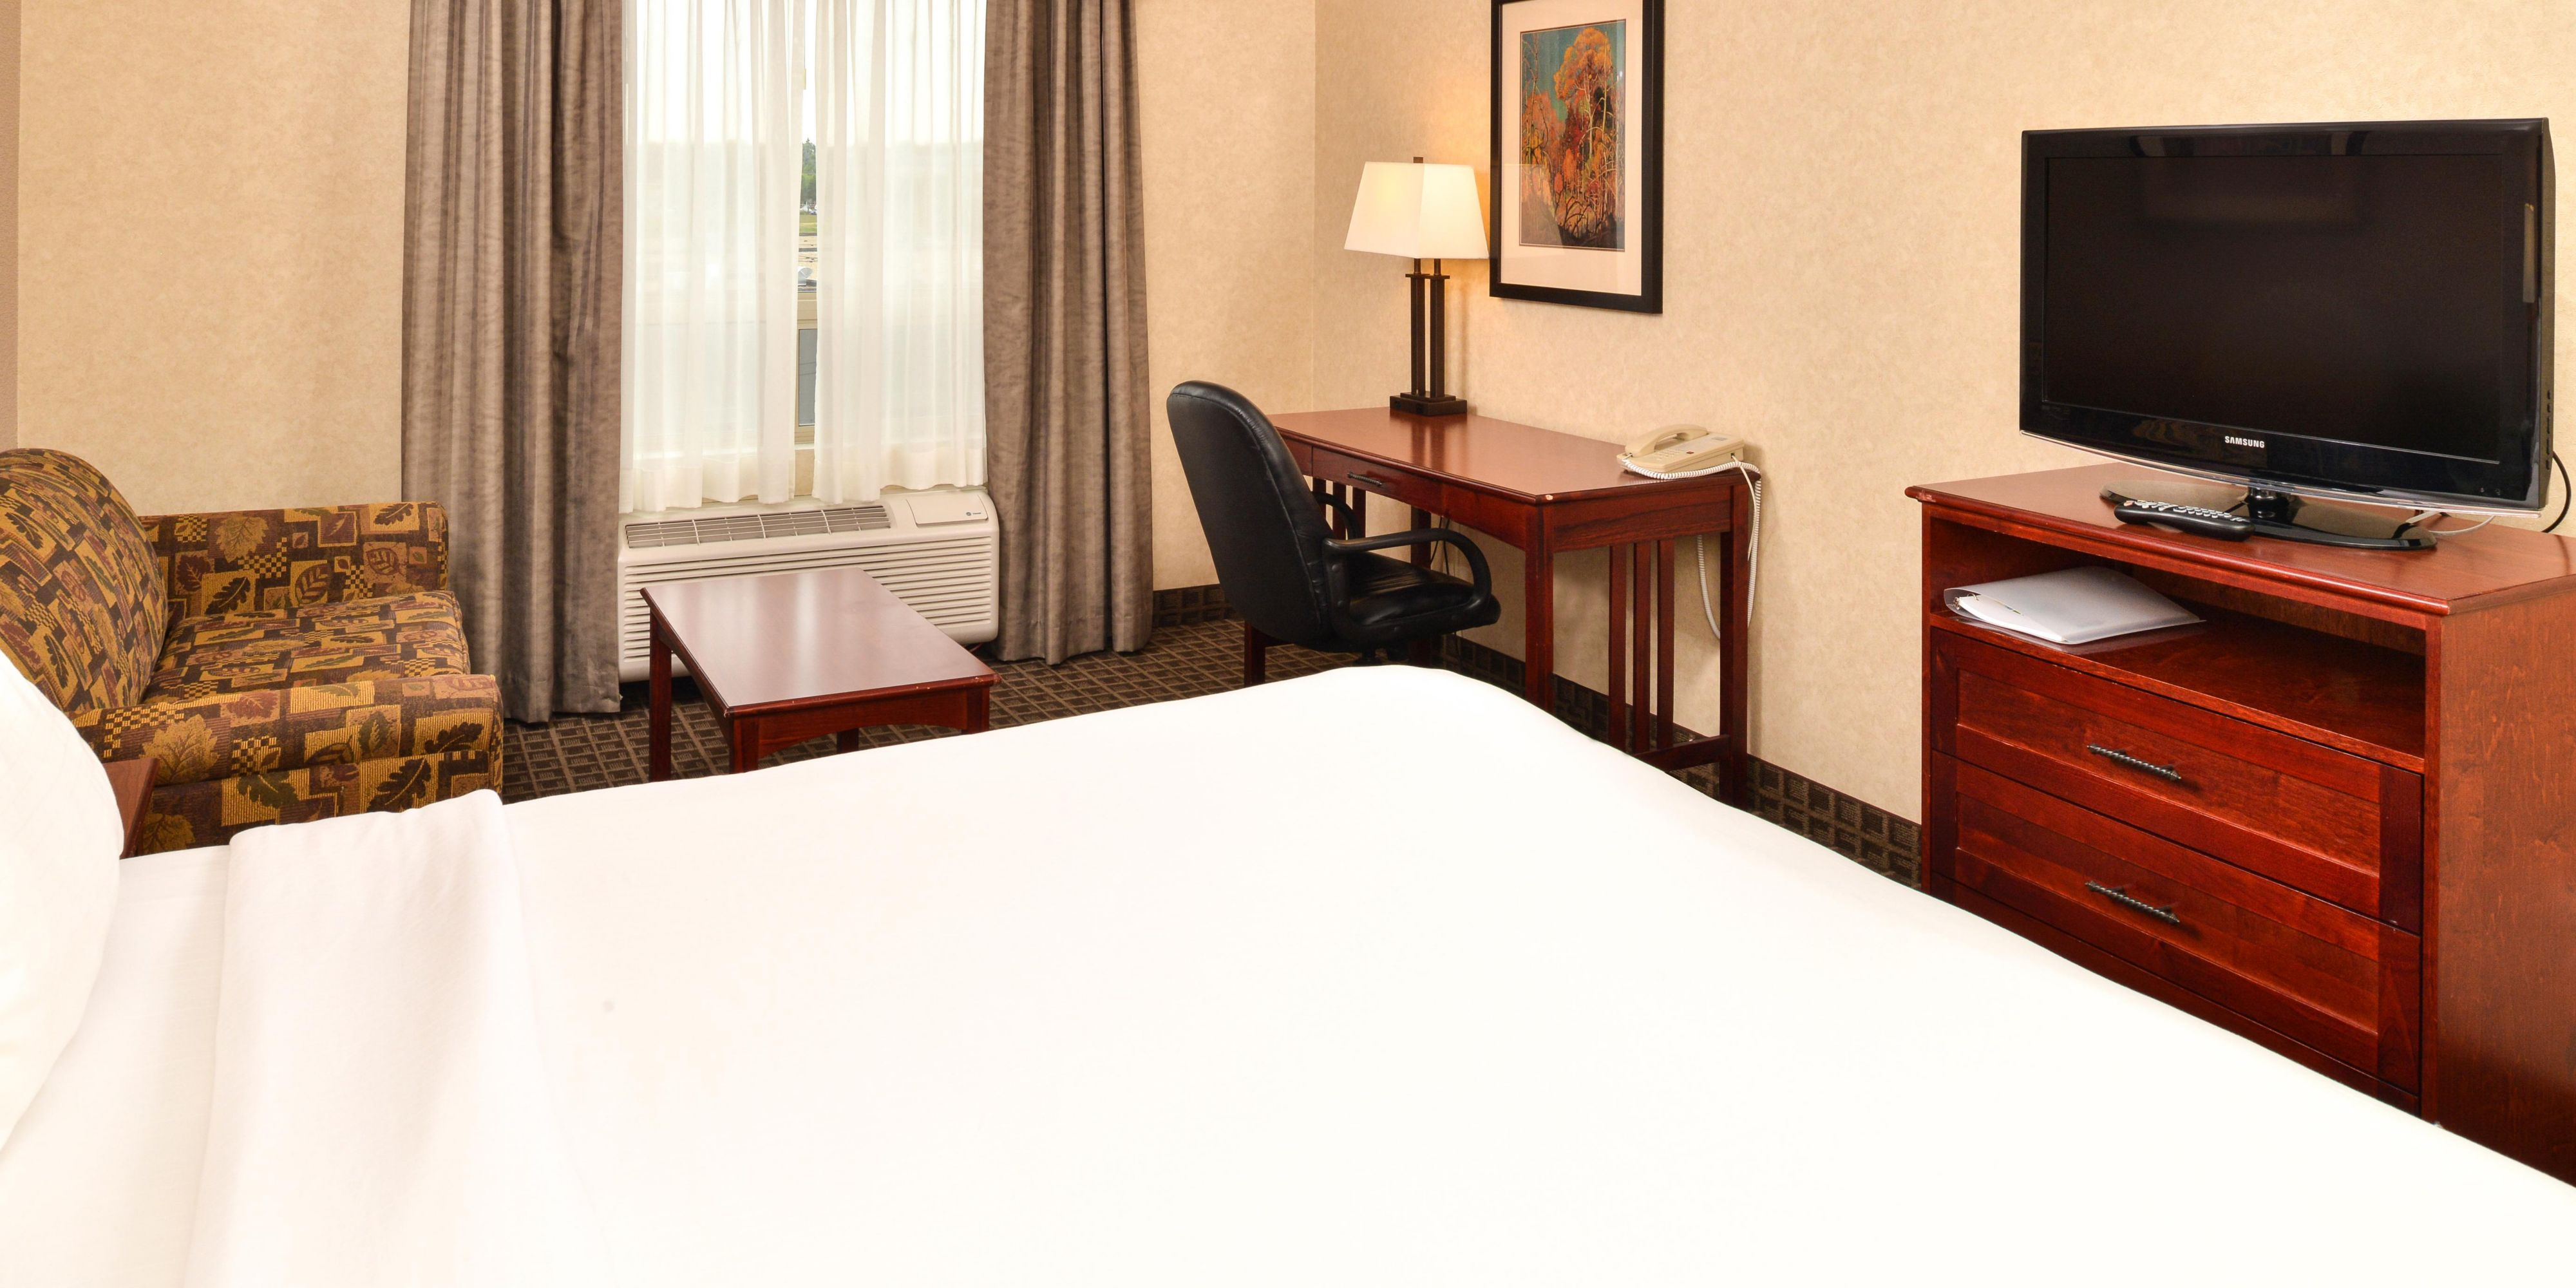 Americas Best Value Inn Suites Roaring River Holiday Inn Express Suites Edmonton North Hotel By Ihg